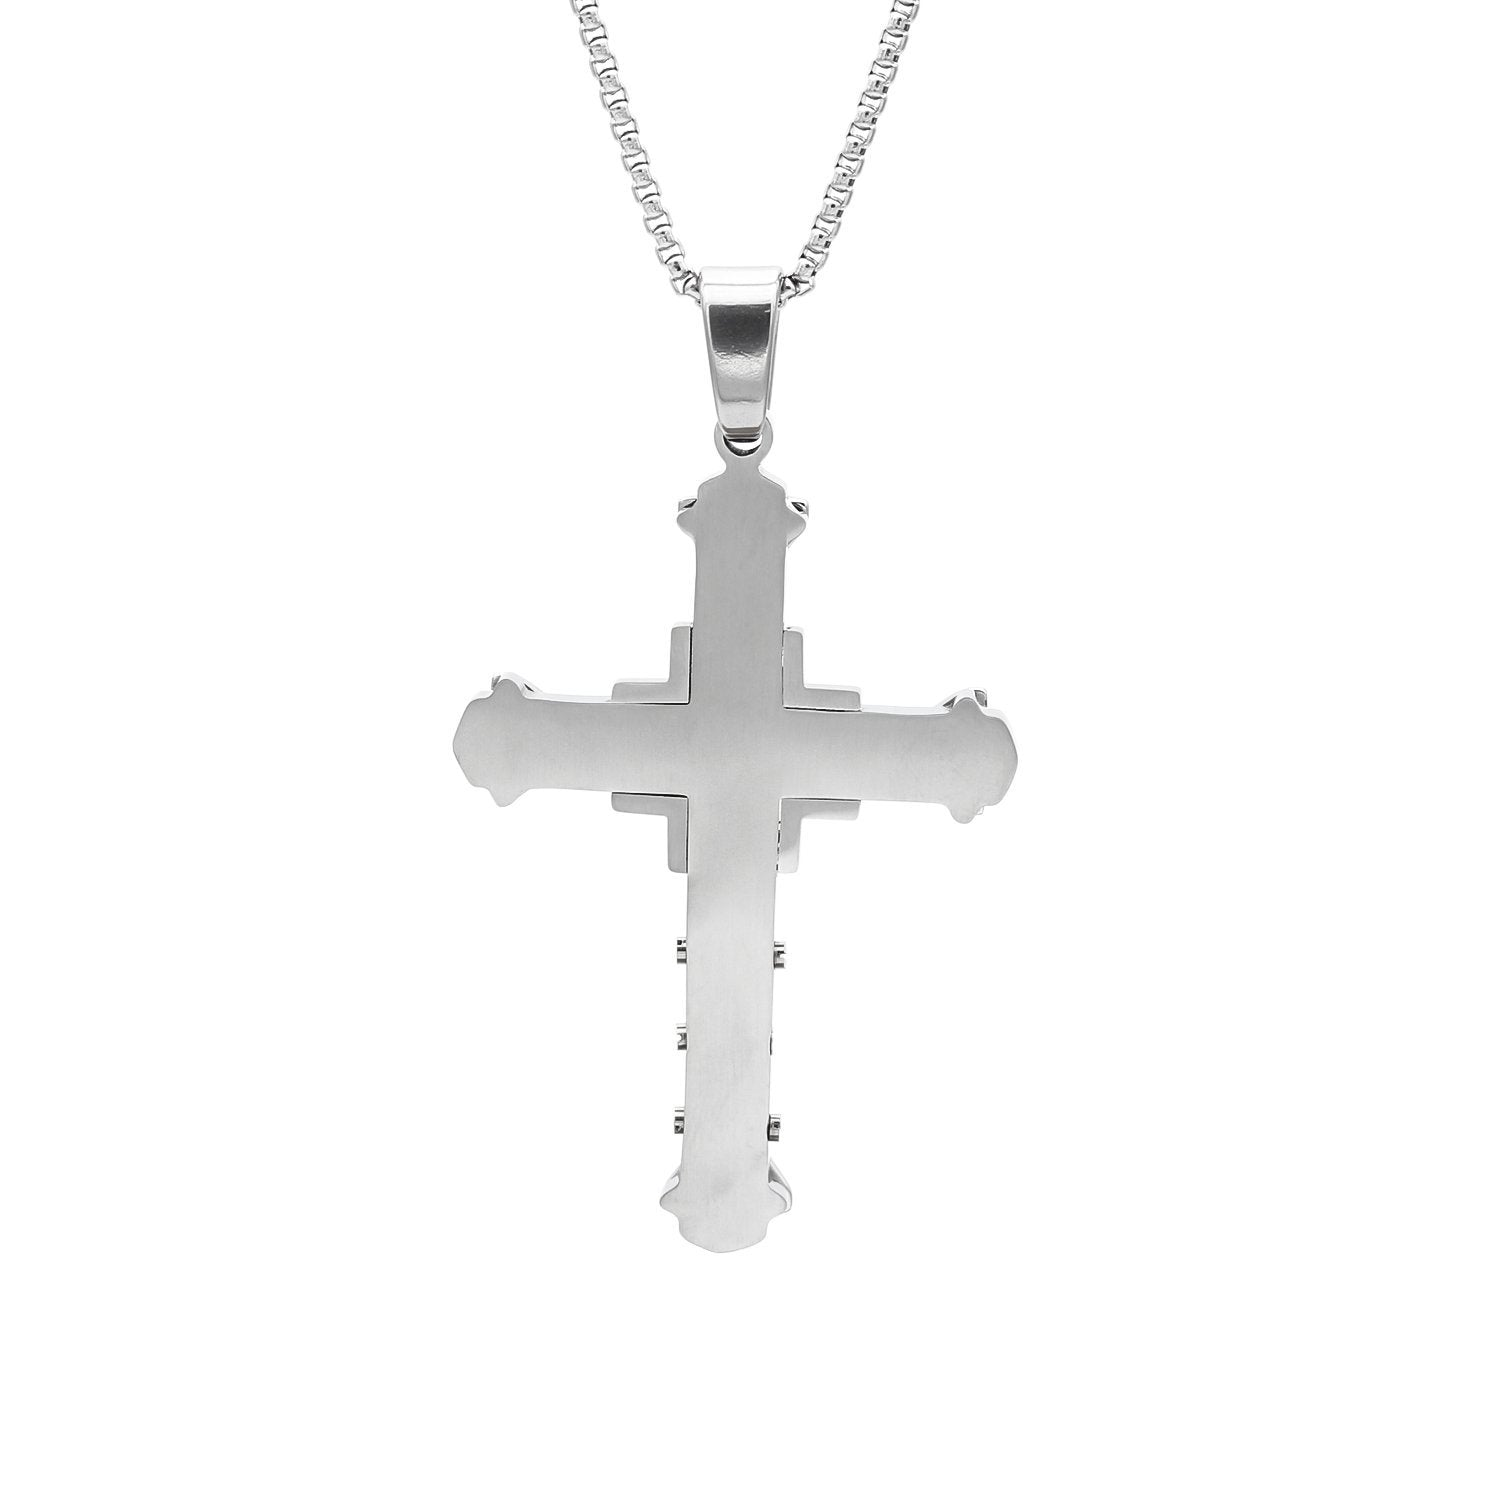 Stainless Steel Cubic Zirconia Cross Design Pendant